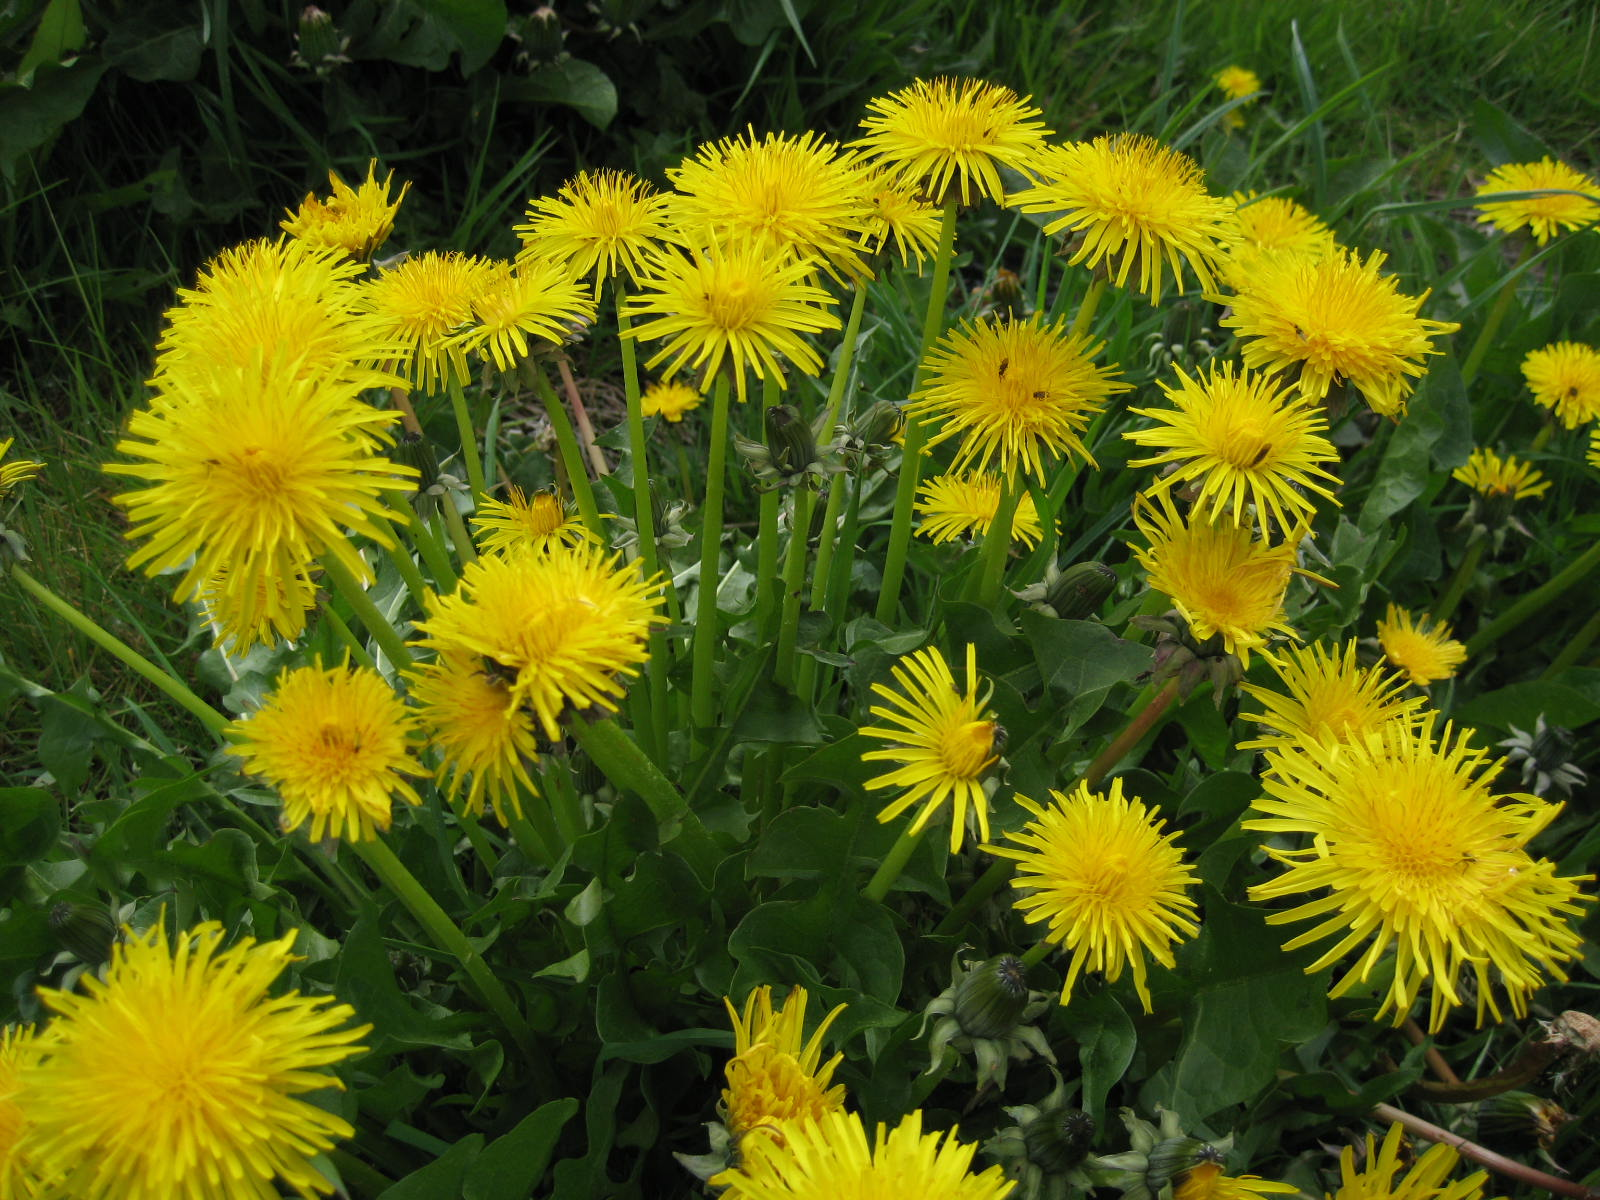 Image: Science confirms the anti-inflammatory effects of a compound found in dandelions